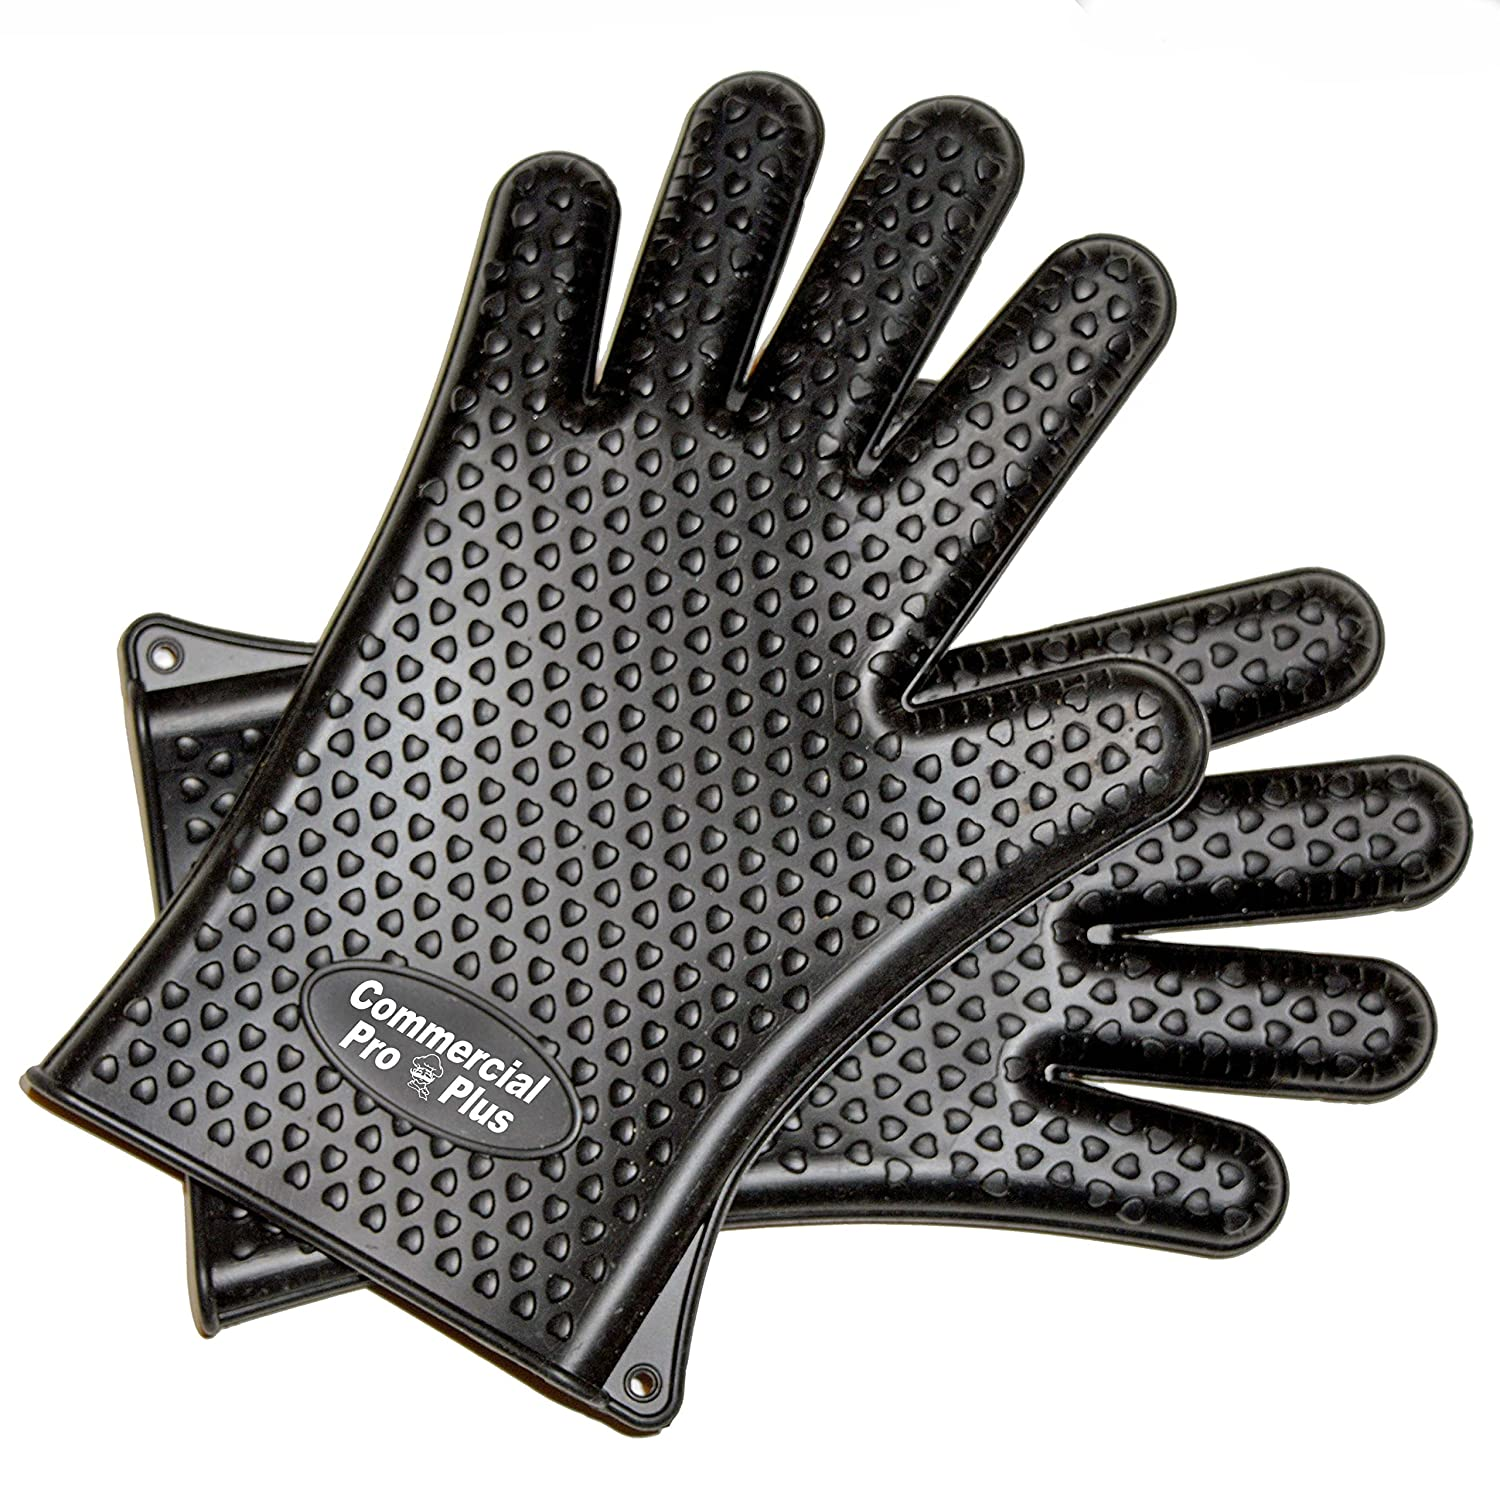 BBQ Silicone Cooking Gloves Heat Resistant Designed Specifically as BBQ Smoking Gloves & Silicone Grill Gloves.